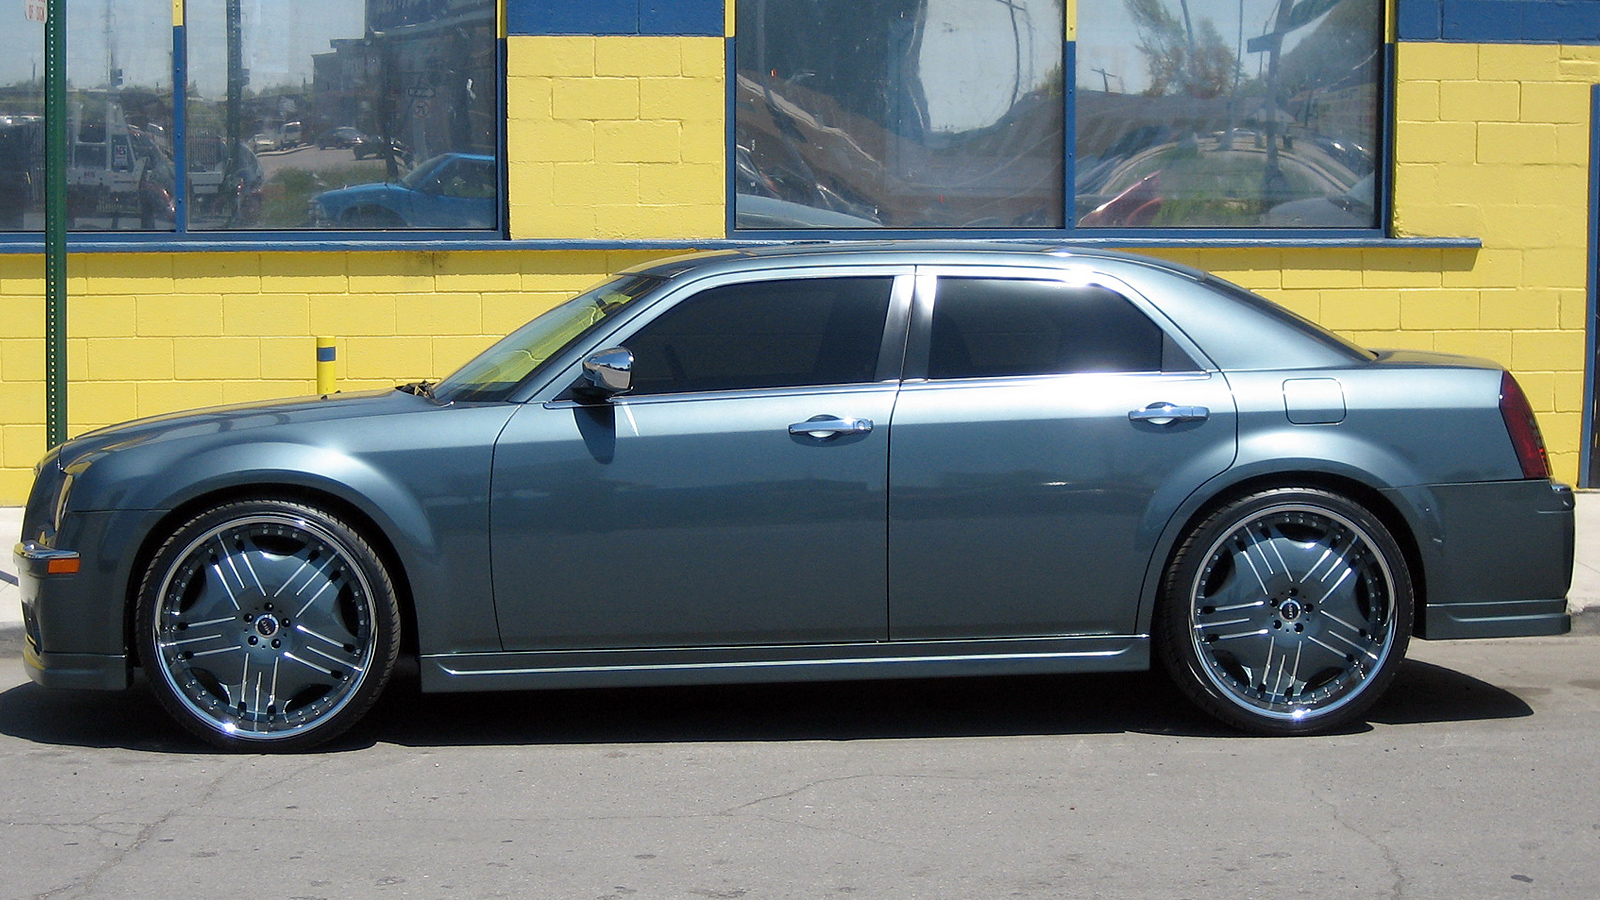 Chrysler 300 #12